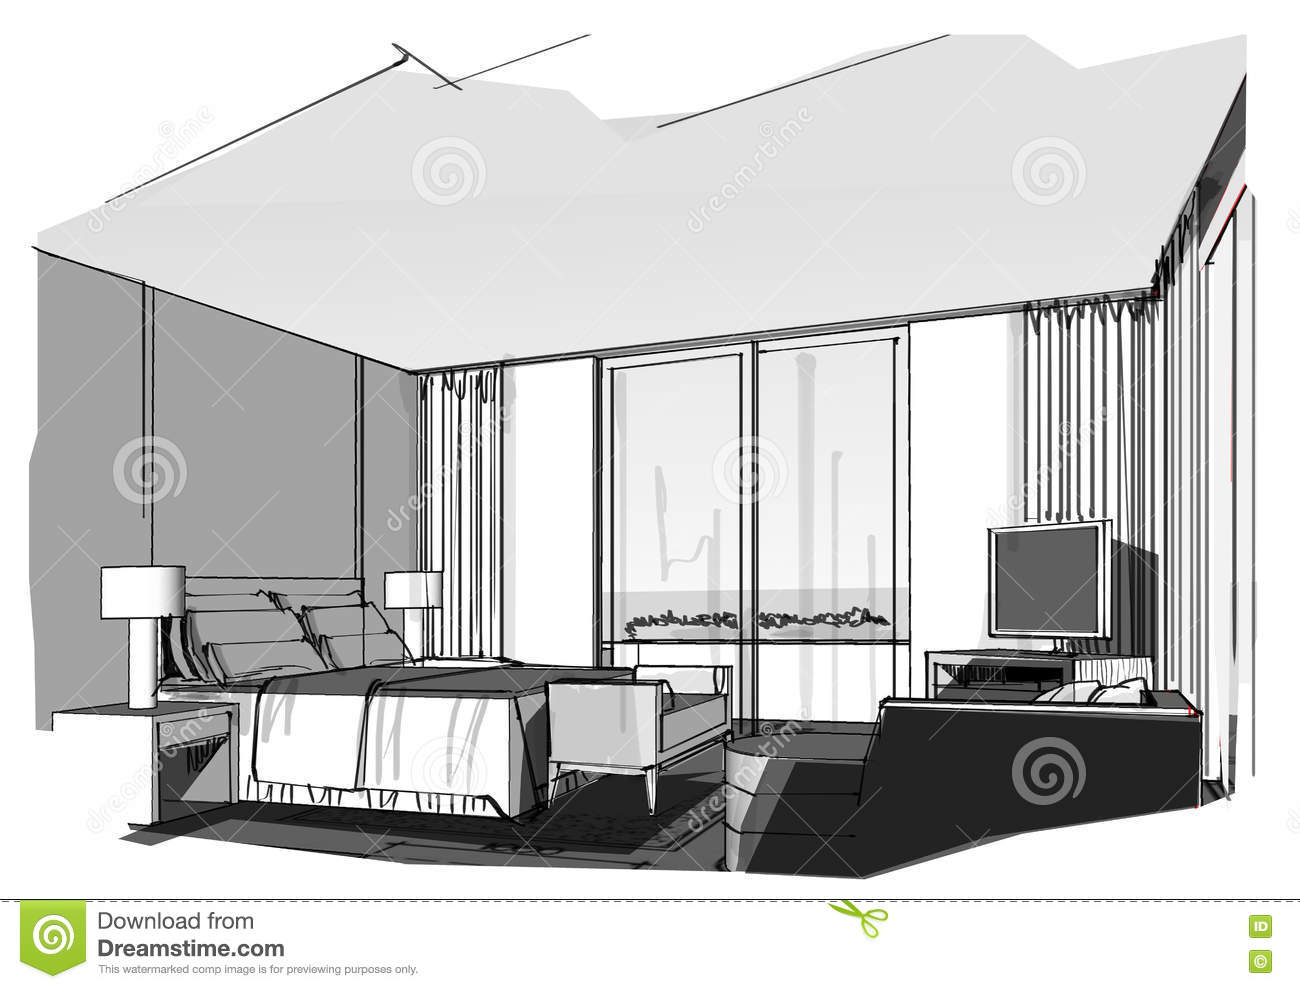 Bedroom drawing with color - Sketch Interior Perspective Stripes Bedroom Stock Image